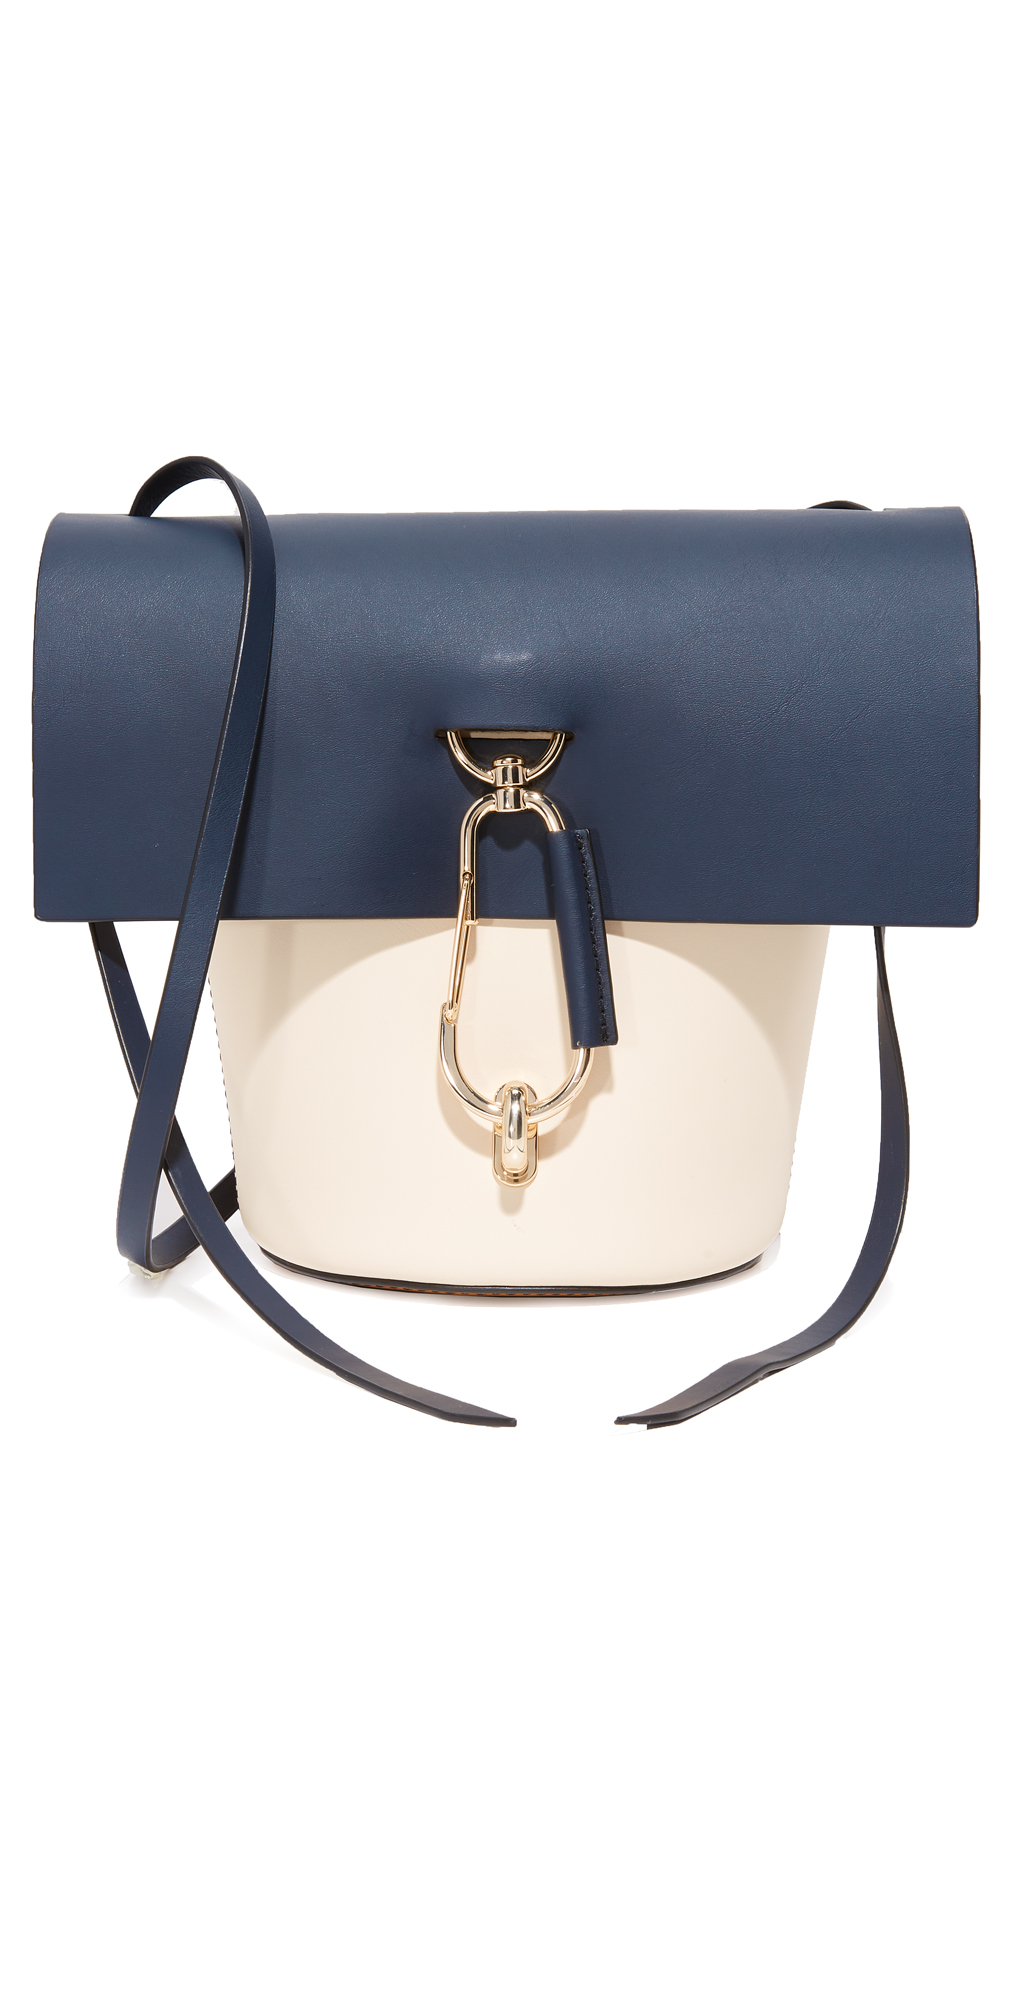 Belay Colorblock Cross Body Bag ZAC Zac Posen